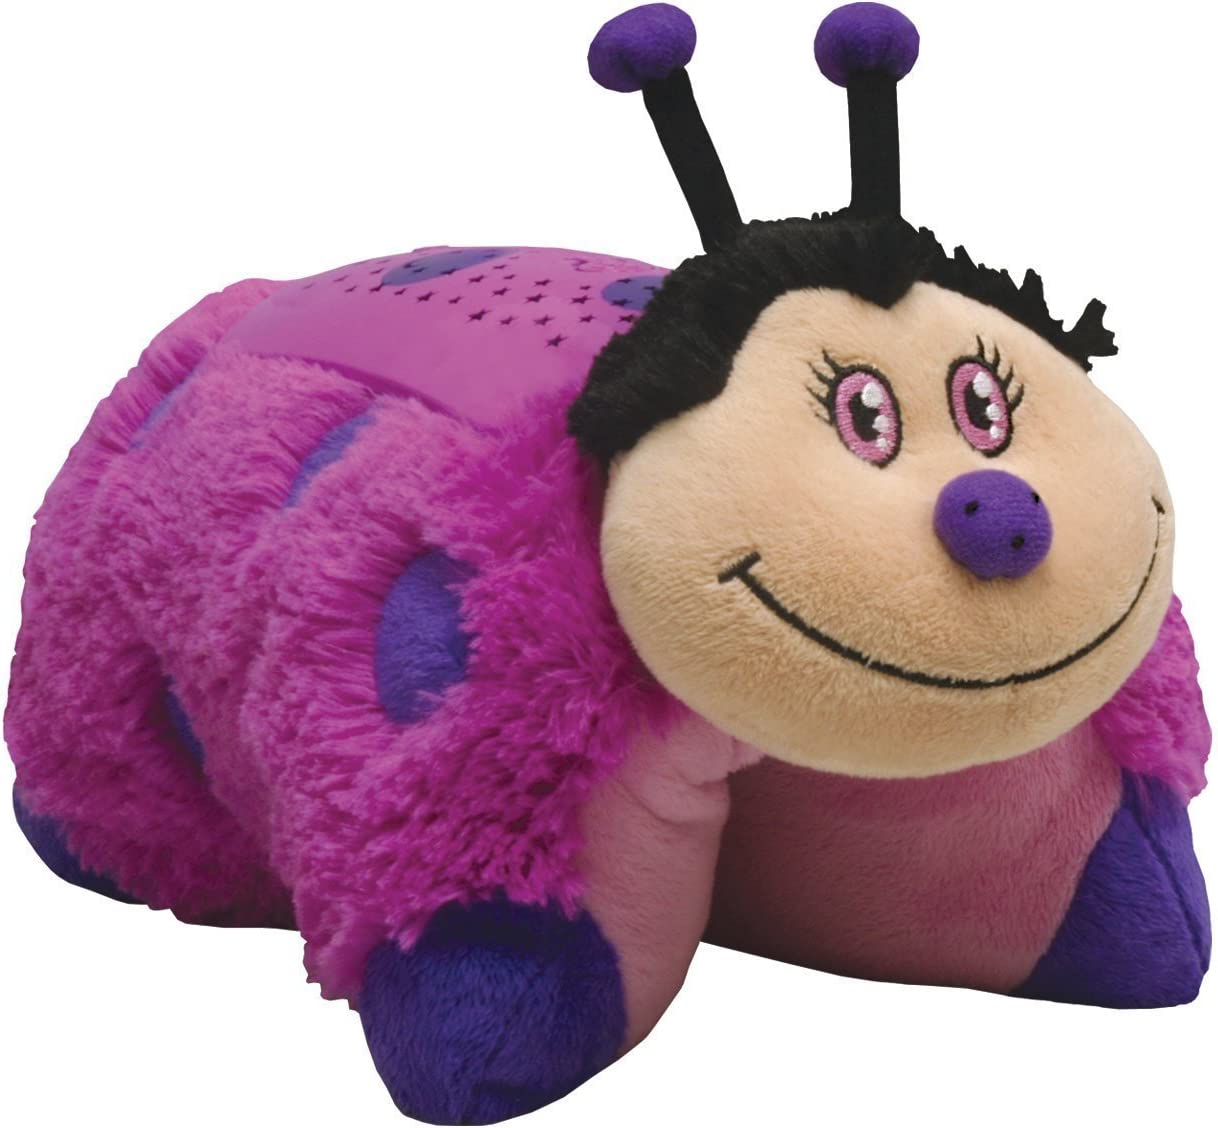 Dream Lites Pillow Pets Hot Pink Lady Bug: Amazon.co.uk